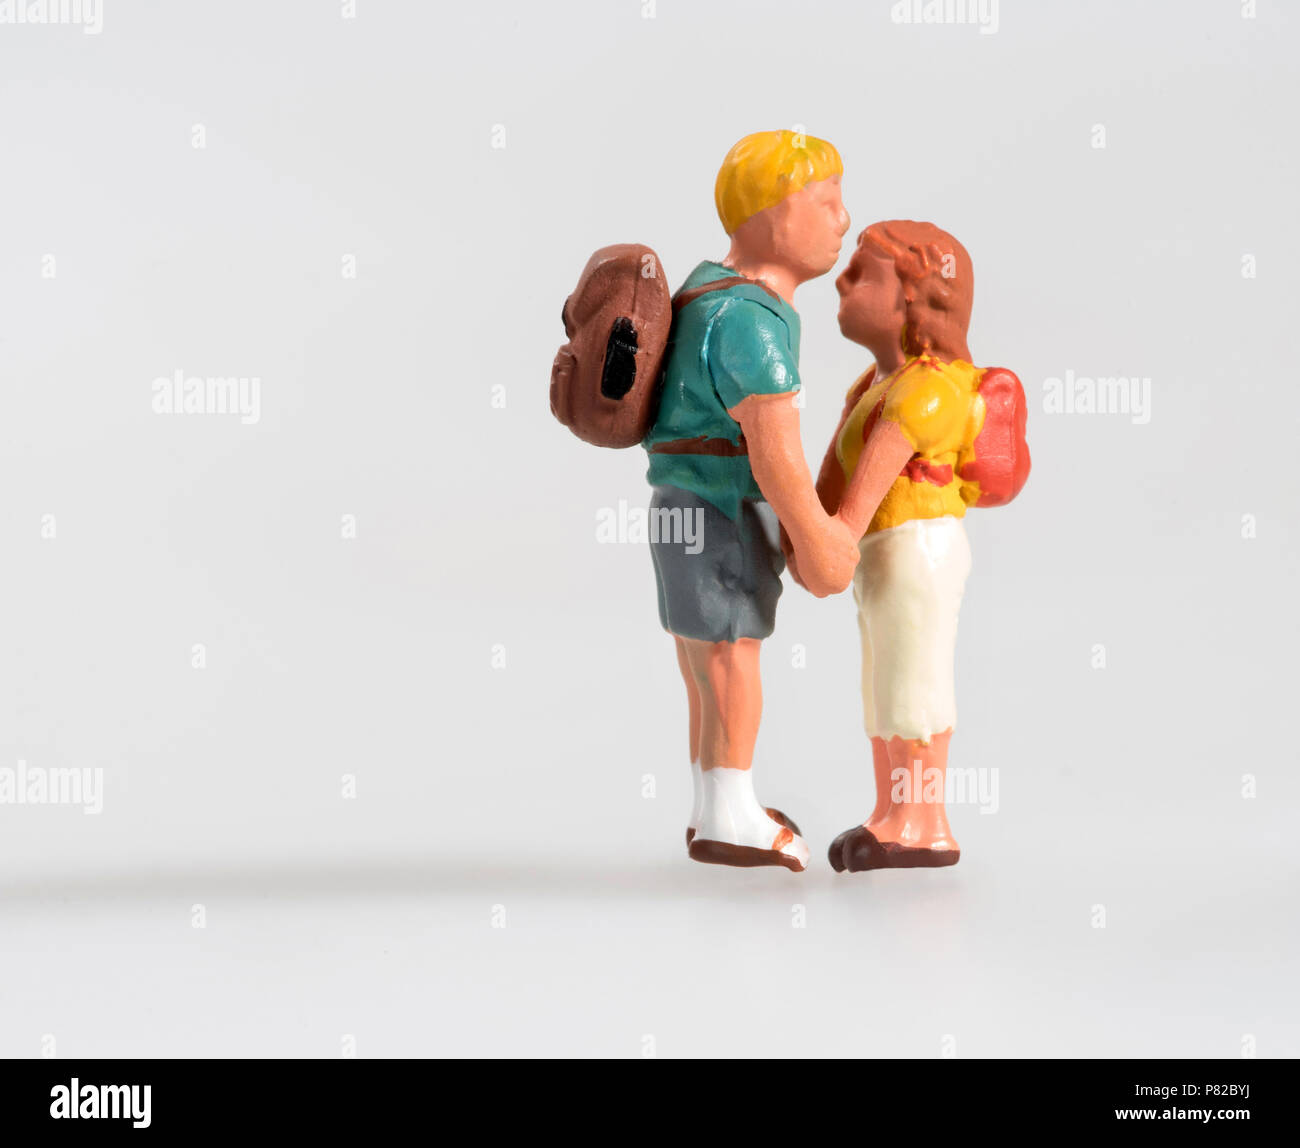 Miniature young couple in love wearing backpacks standing facing each other holding hands isolated on white with copy space in a show of affection Stock Photo